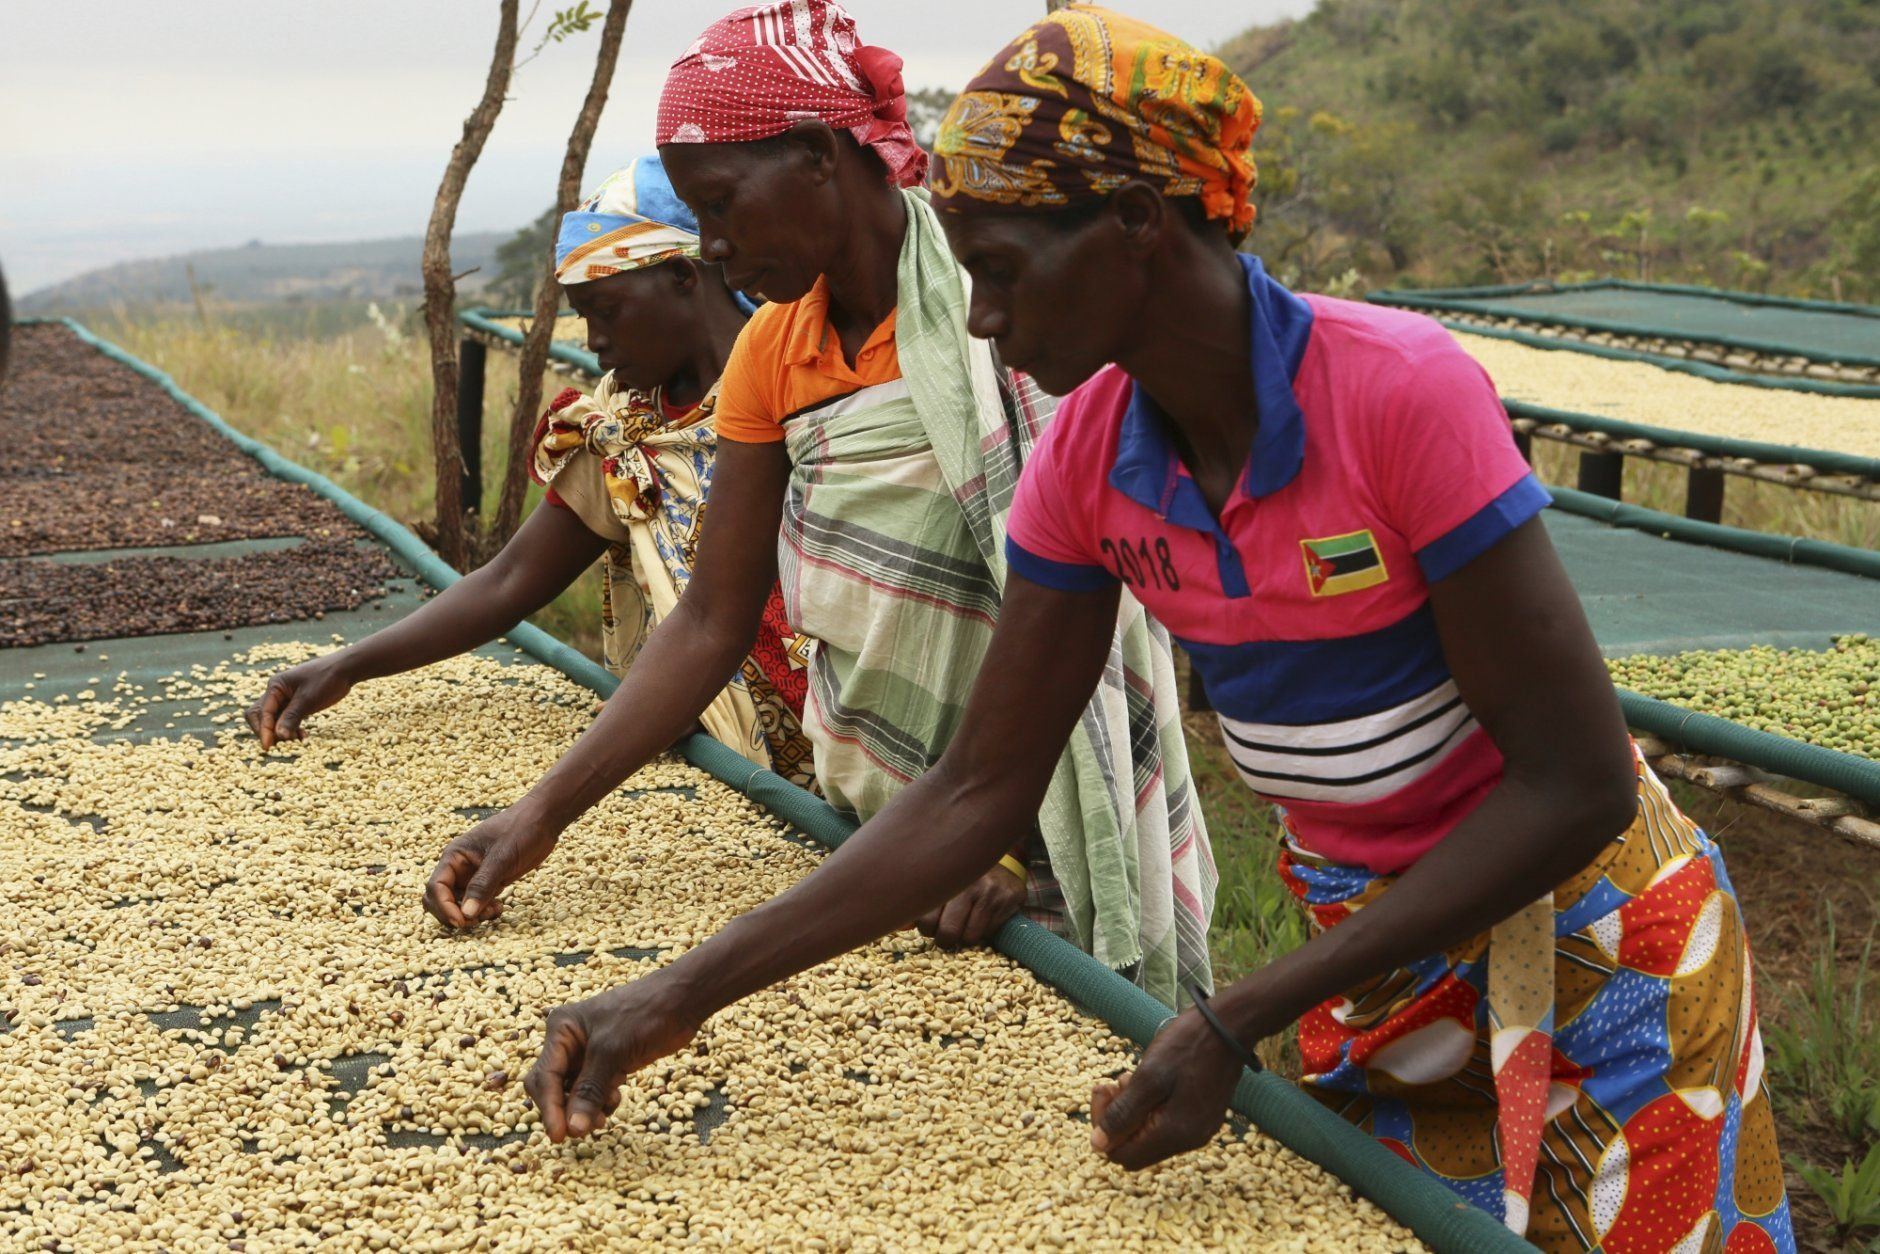 Women sort coffee beans at a coffee plantation in Mount Gorongosa, Mozambique, Sunday Aug. 3, 2019. On the slopes of Mount Gorongosa, more than 100 farmers are producing coffee that earns them incomes while at the same time restores the rapidly eroding rainforest. With peace on the mountaintop there are plans to dramatically scale up coffee production, as part of Gorongosa National Park's innovative plan to boost the incomes of people living around the park as well as revitalizing the environment. (AP Photo/Tsvangirayi Mukwazhi)